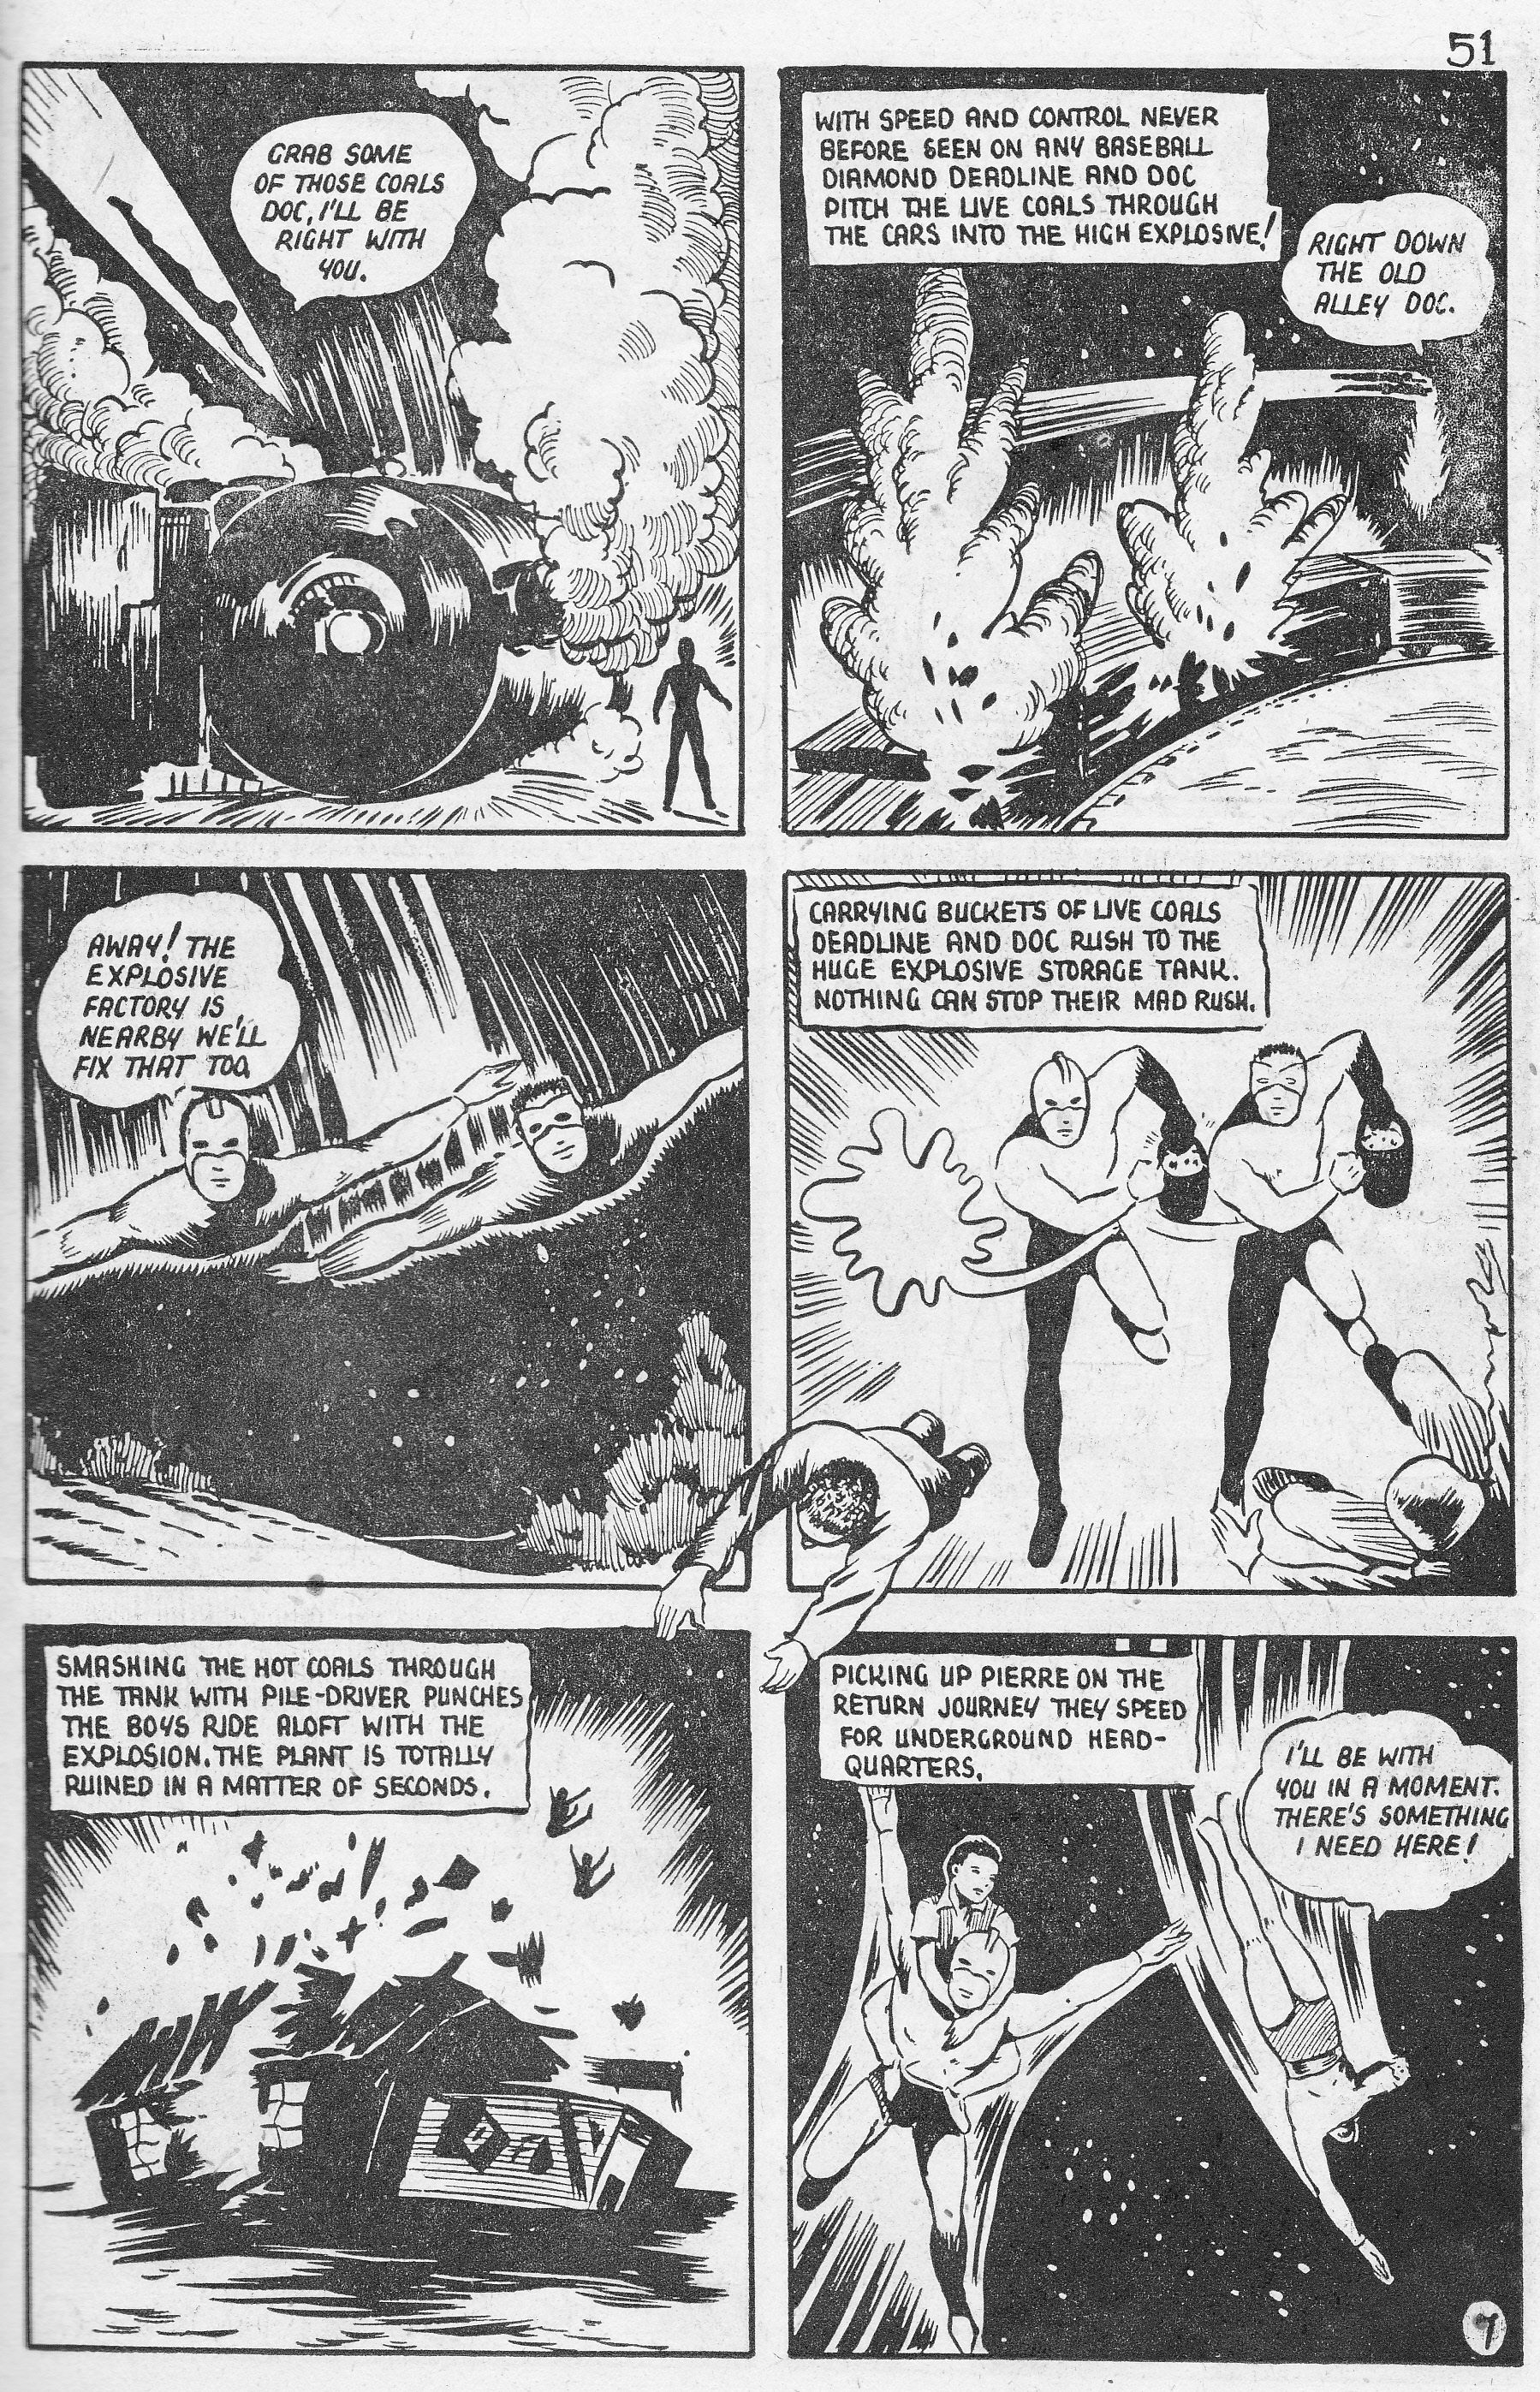 C:\Users\Robert\Documents\CARTOONING ILLUSTRATION ANIMATION\IMAGE CARTOON\IMAGE CARTOON D\DEADLINE DICK, Three Aces Comics, 2-3, April 1943, 51.jpg